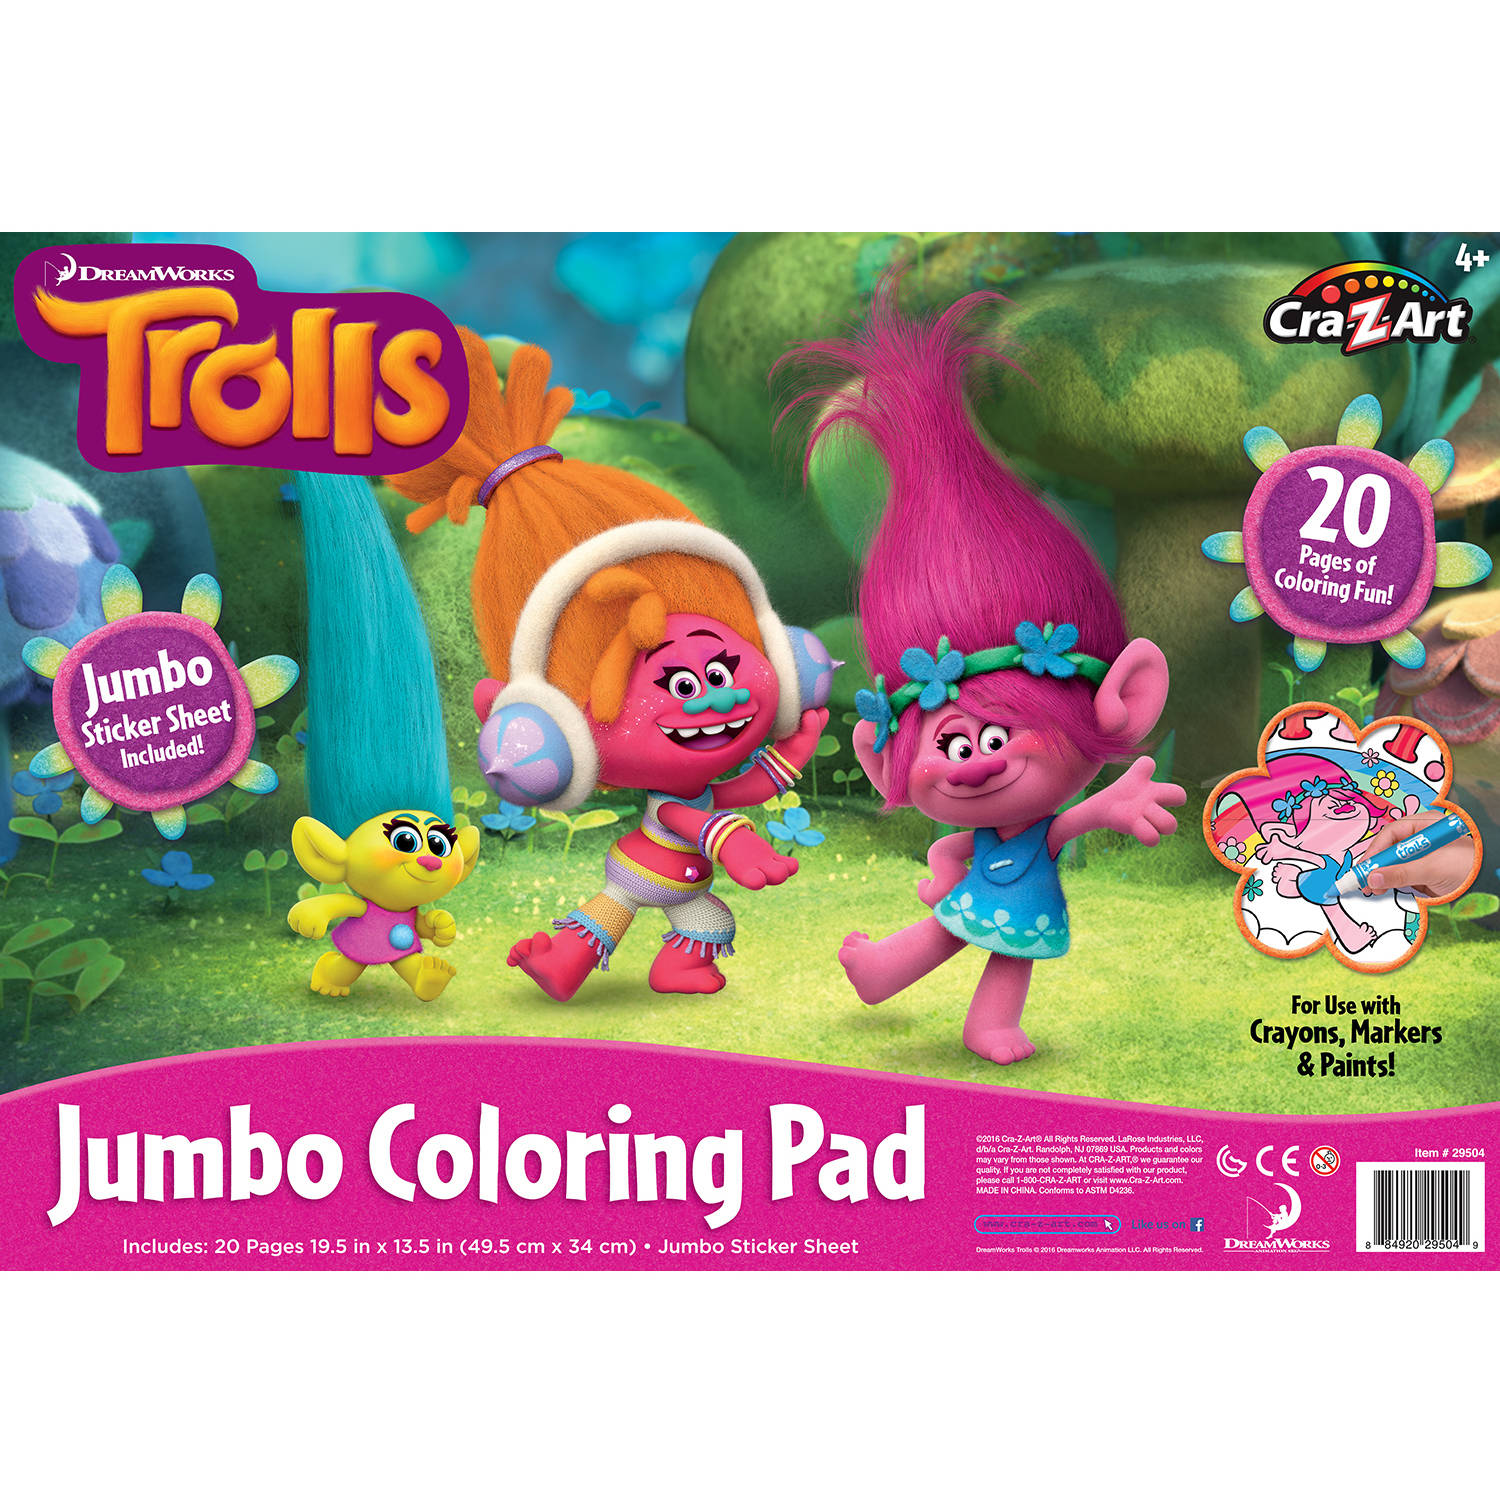 Cra-Z-Art Trolls Jumbo Coloring Pad by CRA-Z-ART